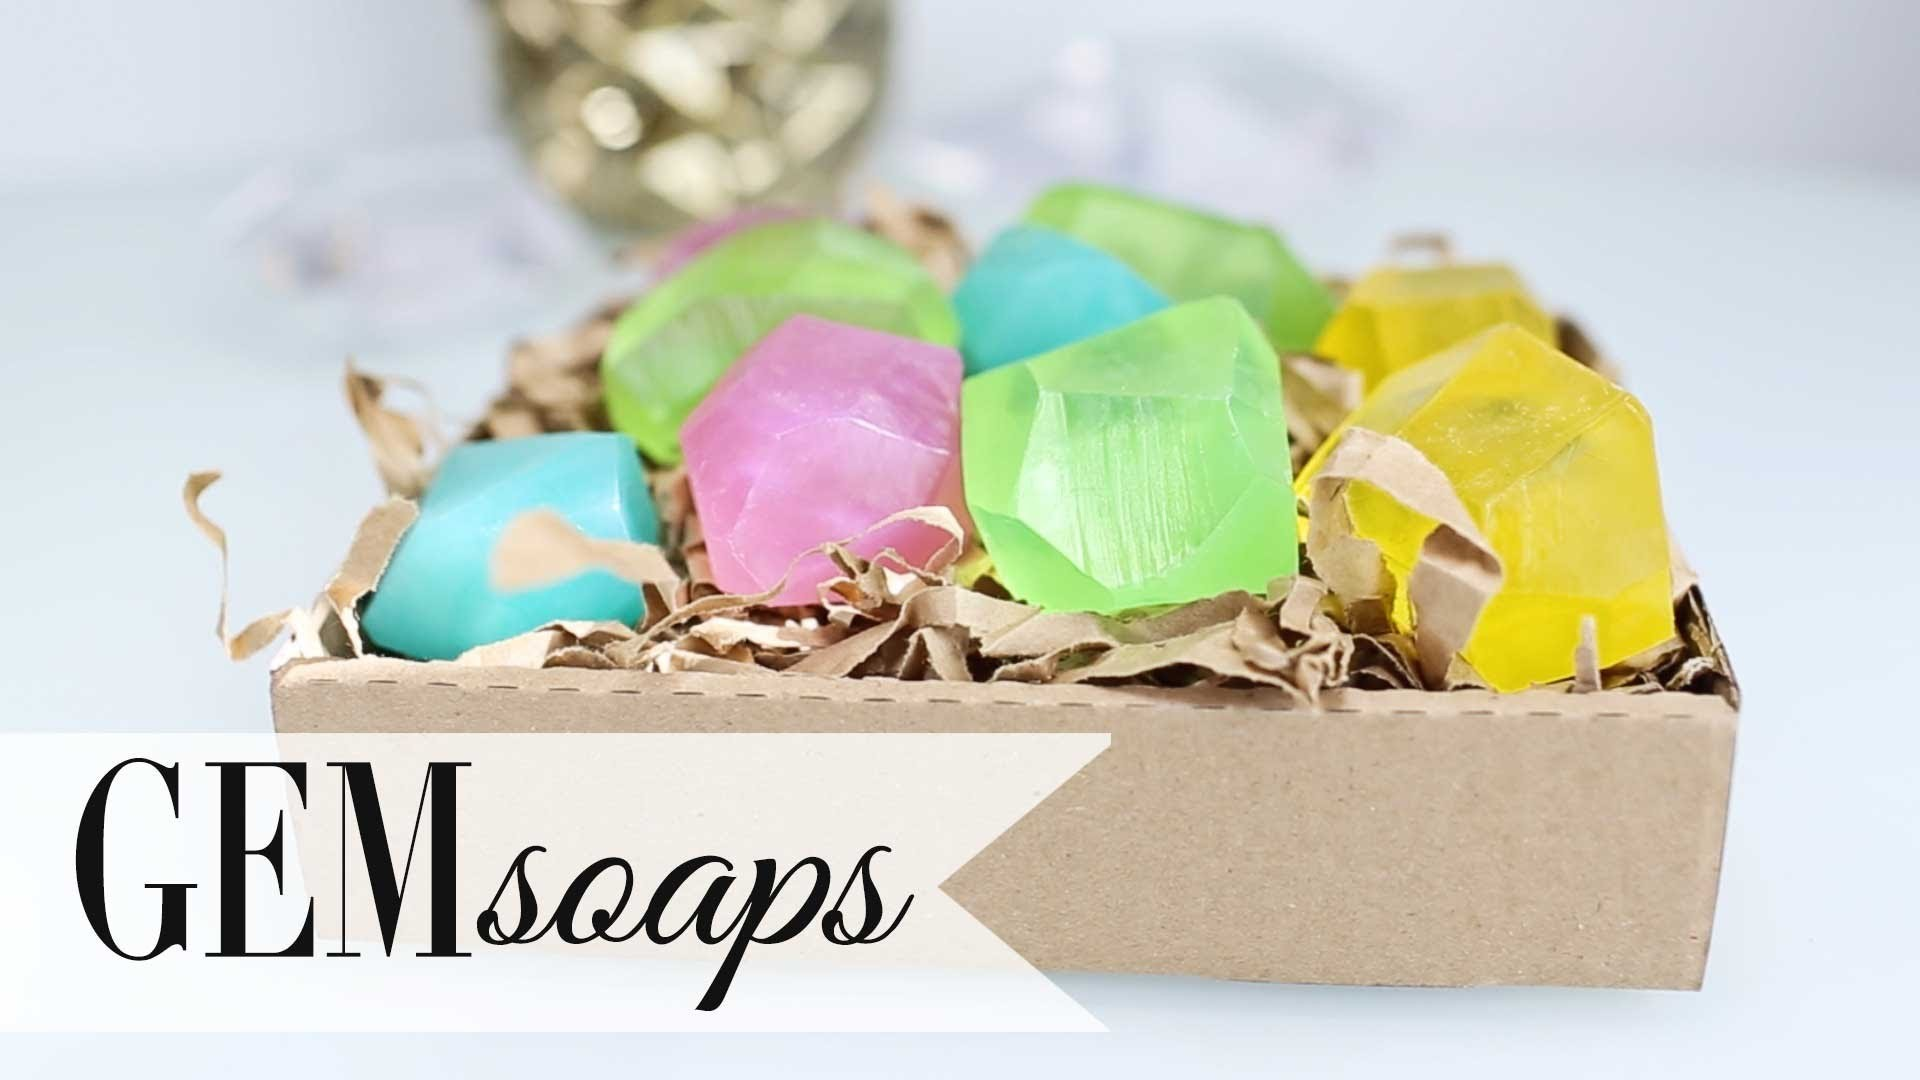 DIY Geodesic Gem Soap - Summer Party Favors by ANNEORSHINE